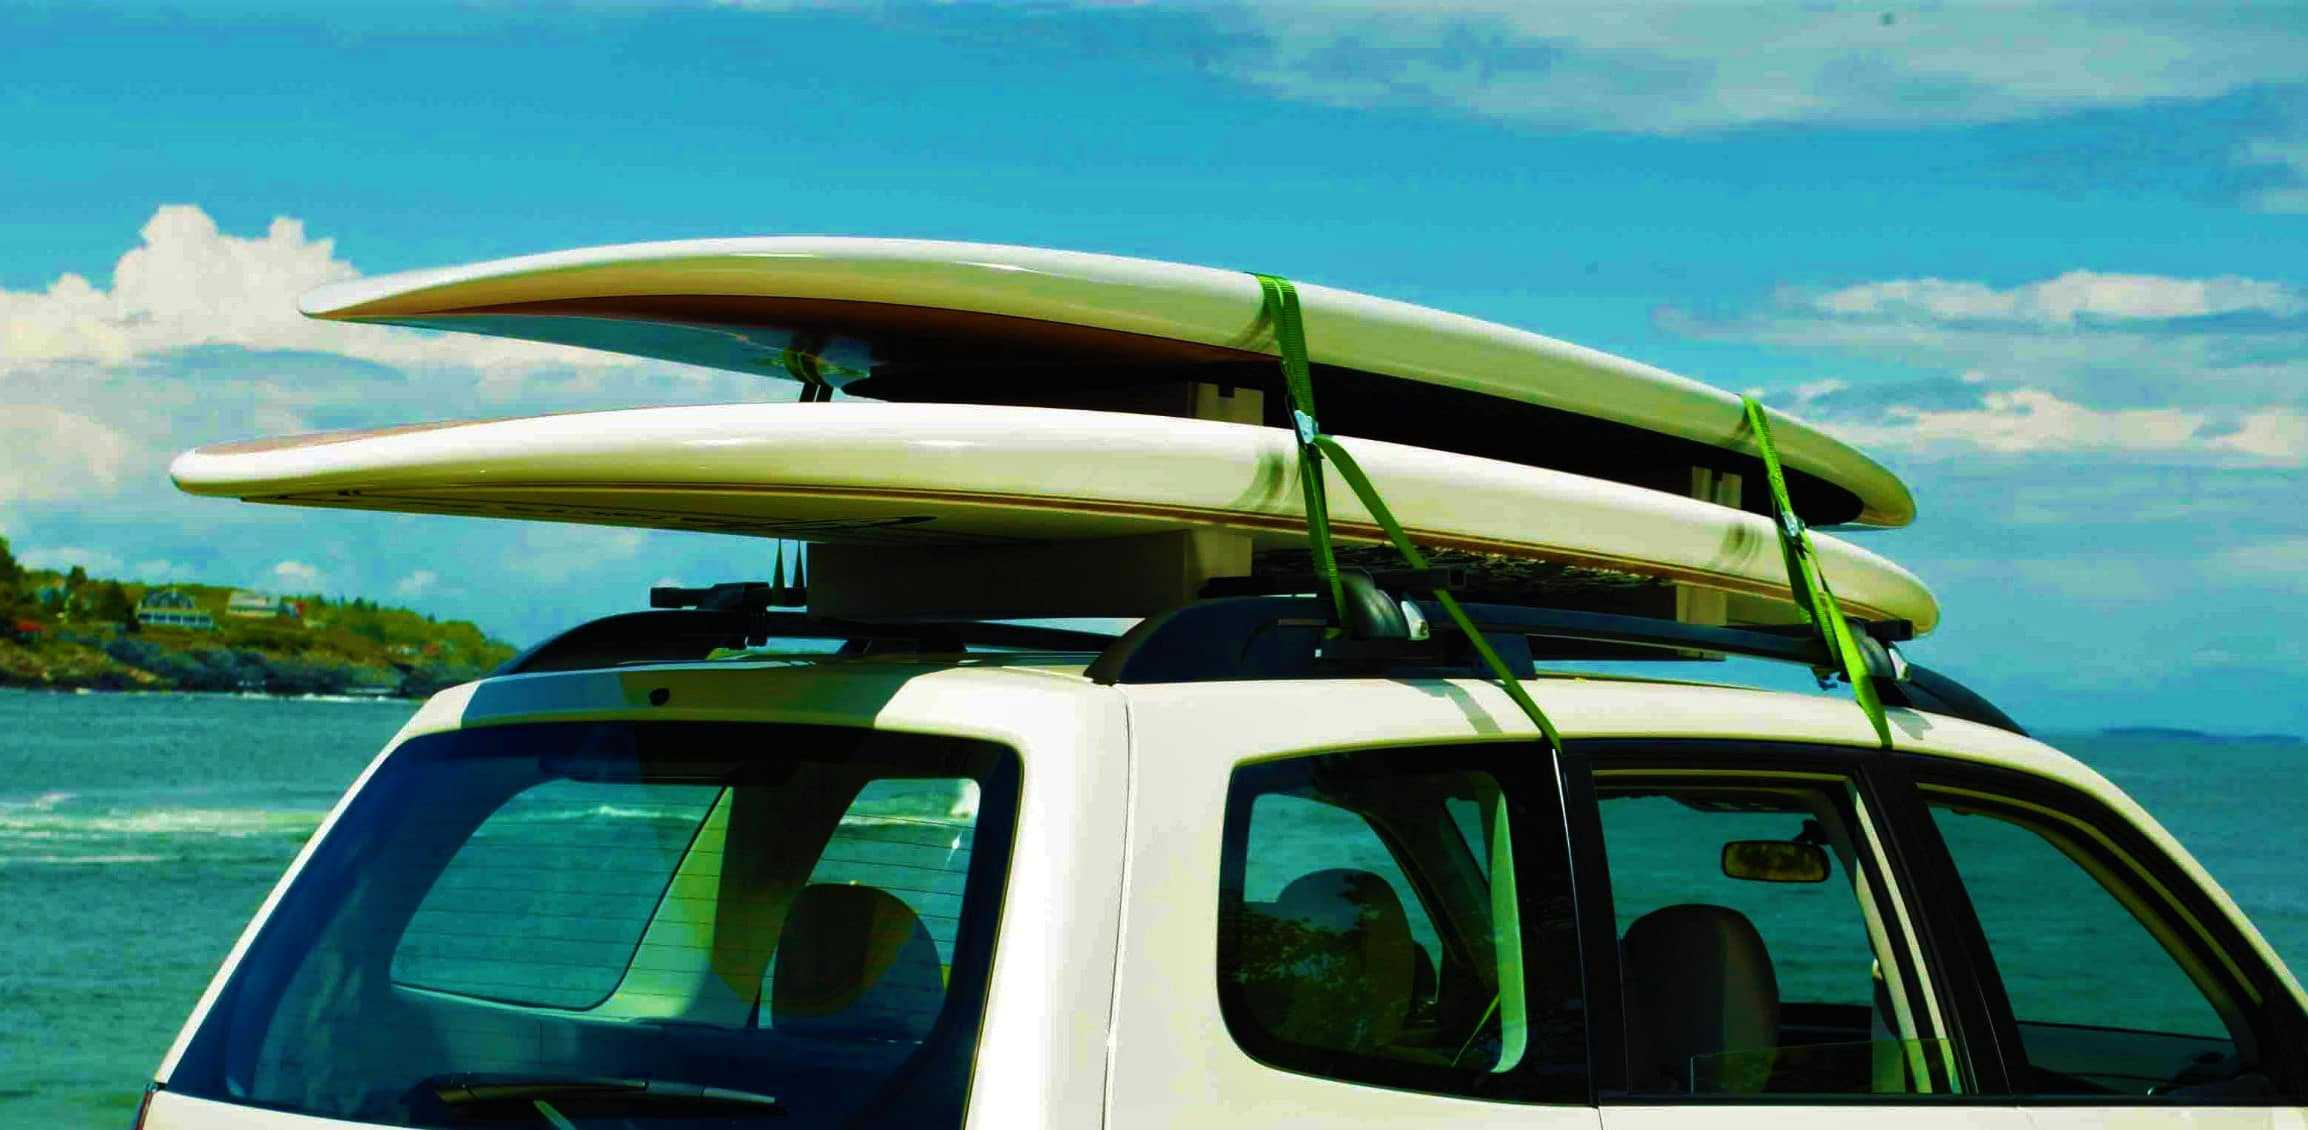 How To Transport A Paddle Board Or Stay Home Like A Loser